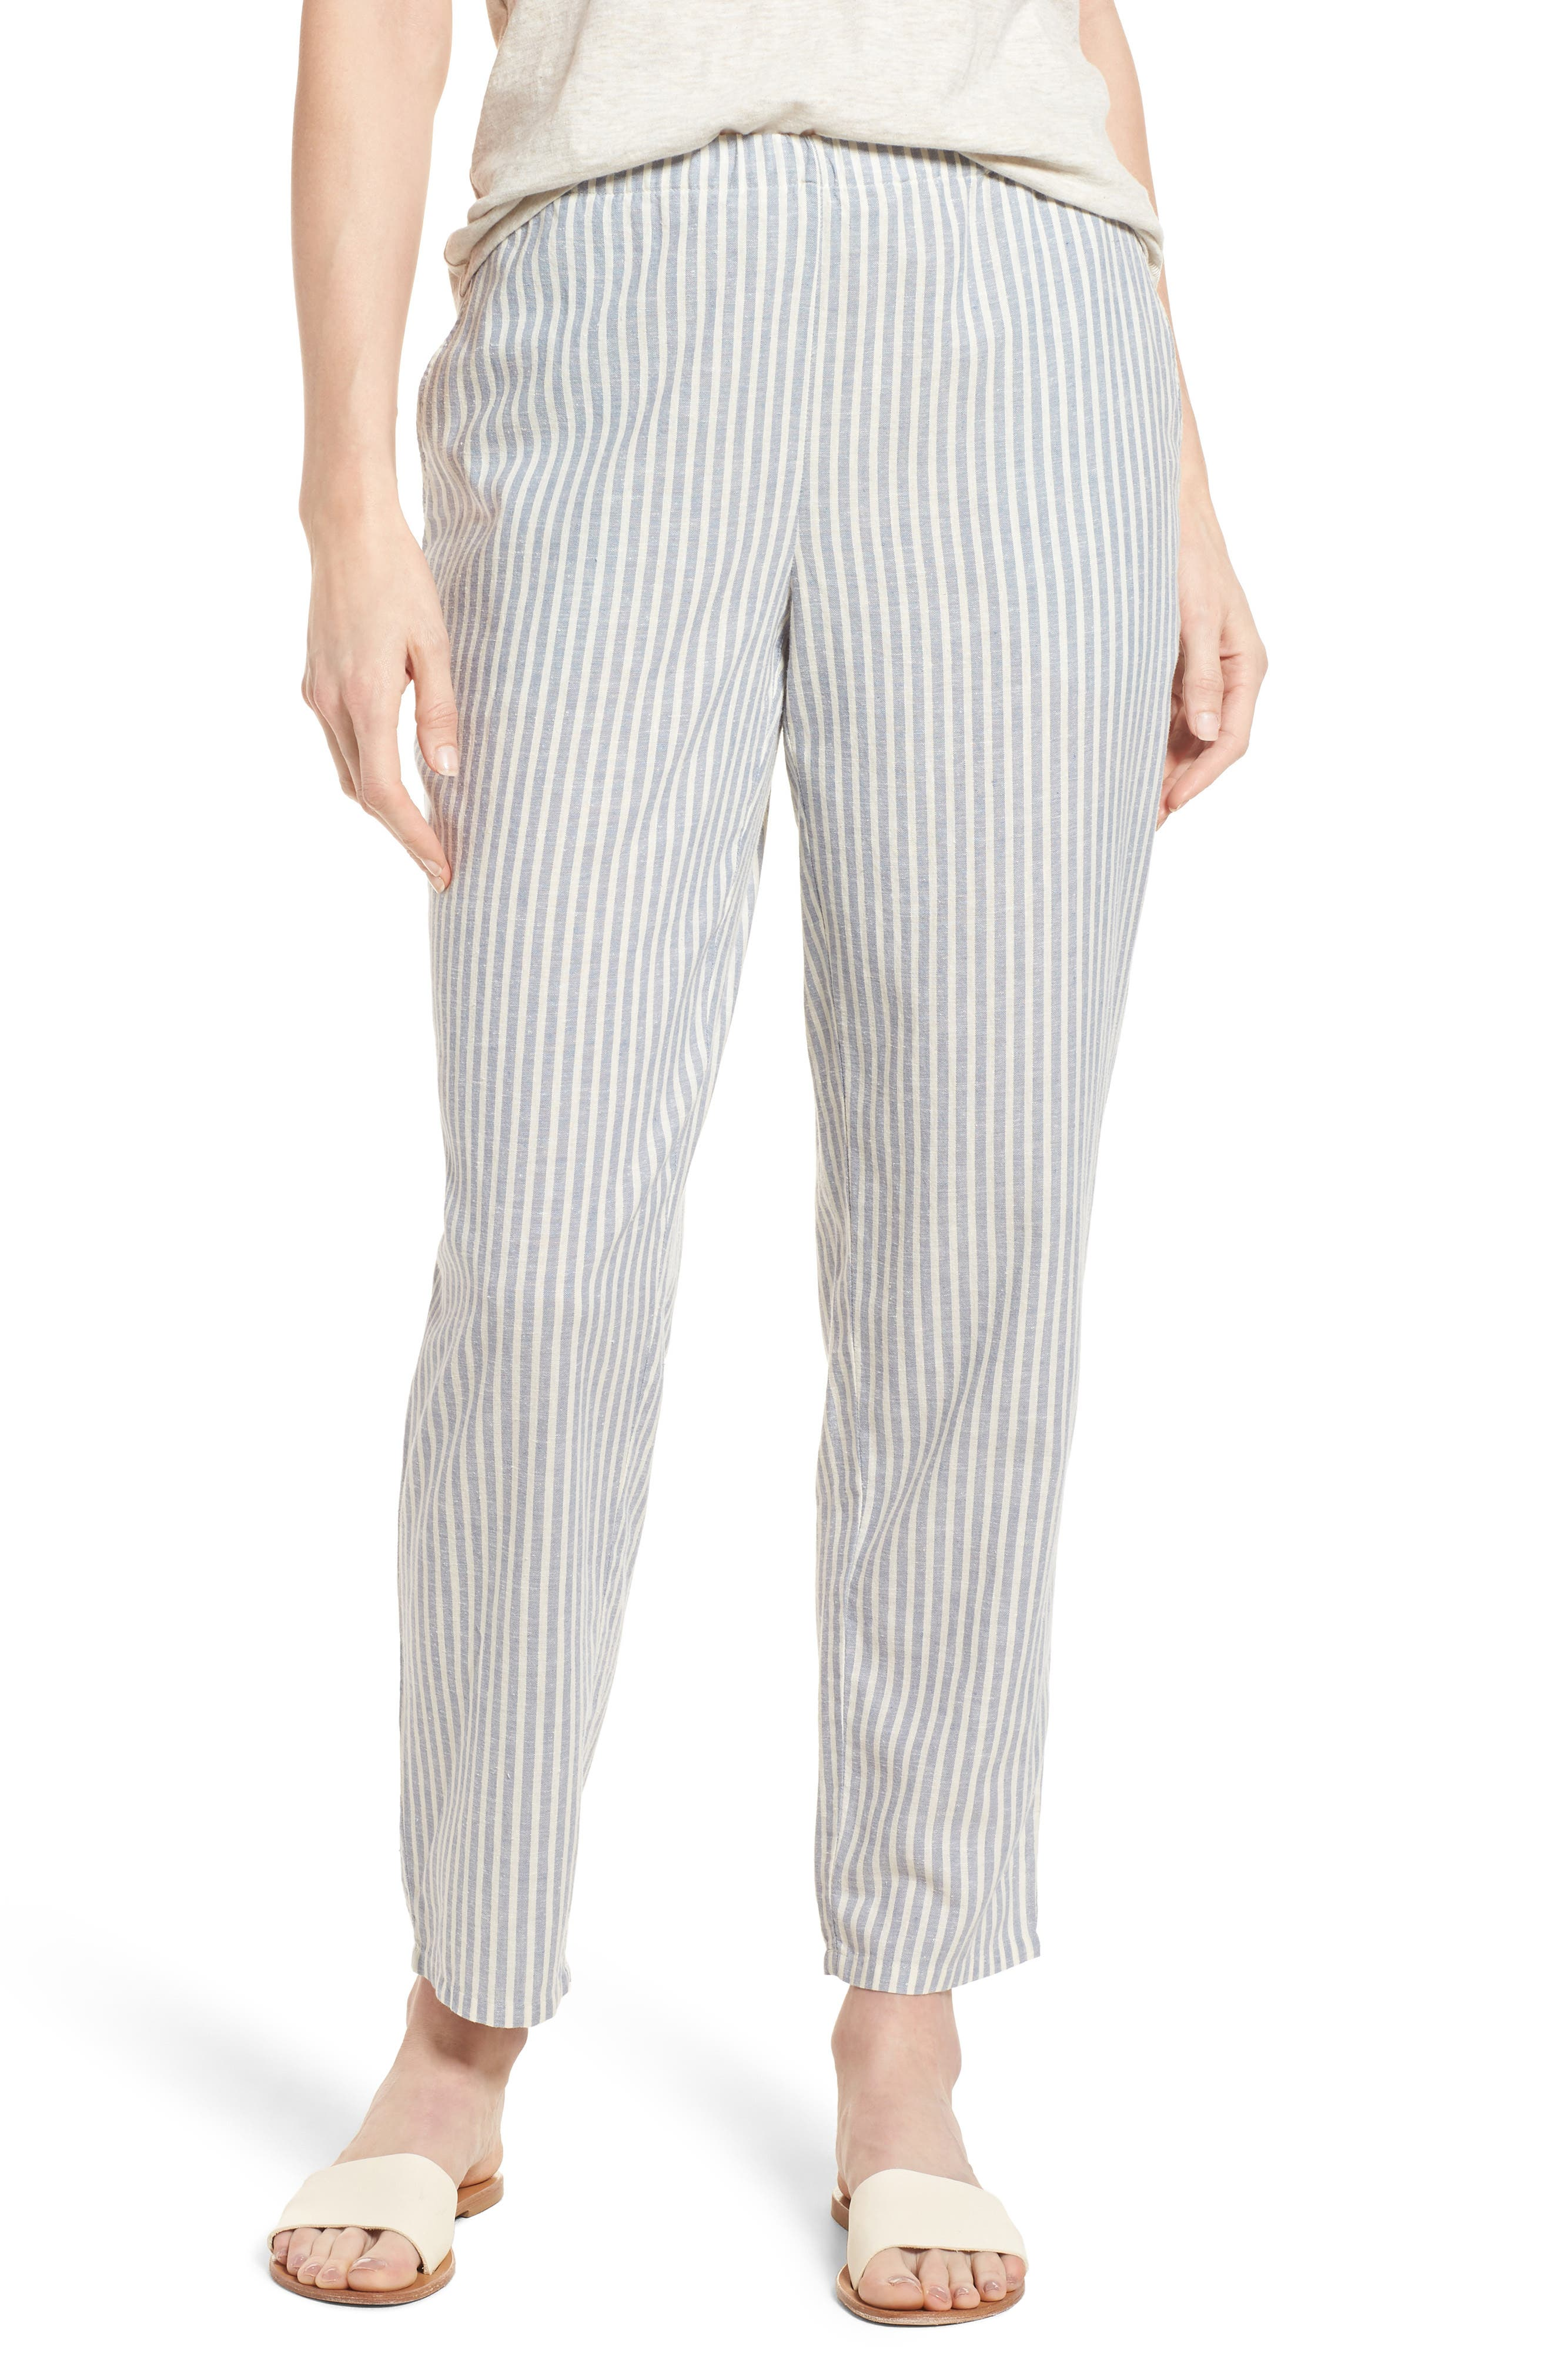 Stripe Tapered Hemp Blend Ankle Pants,                             Main thumbnail 1, color,                             Chambray